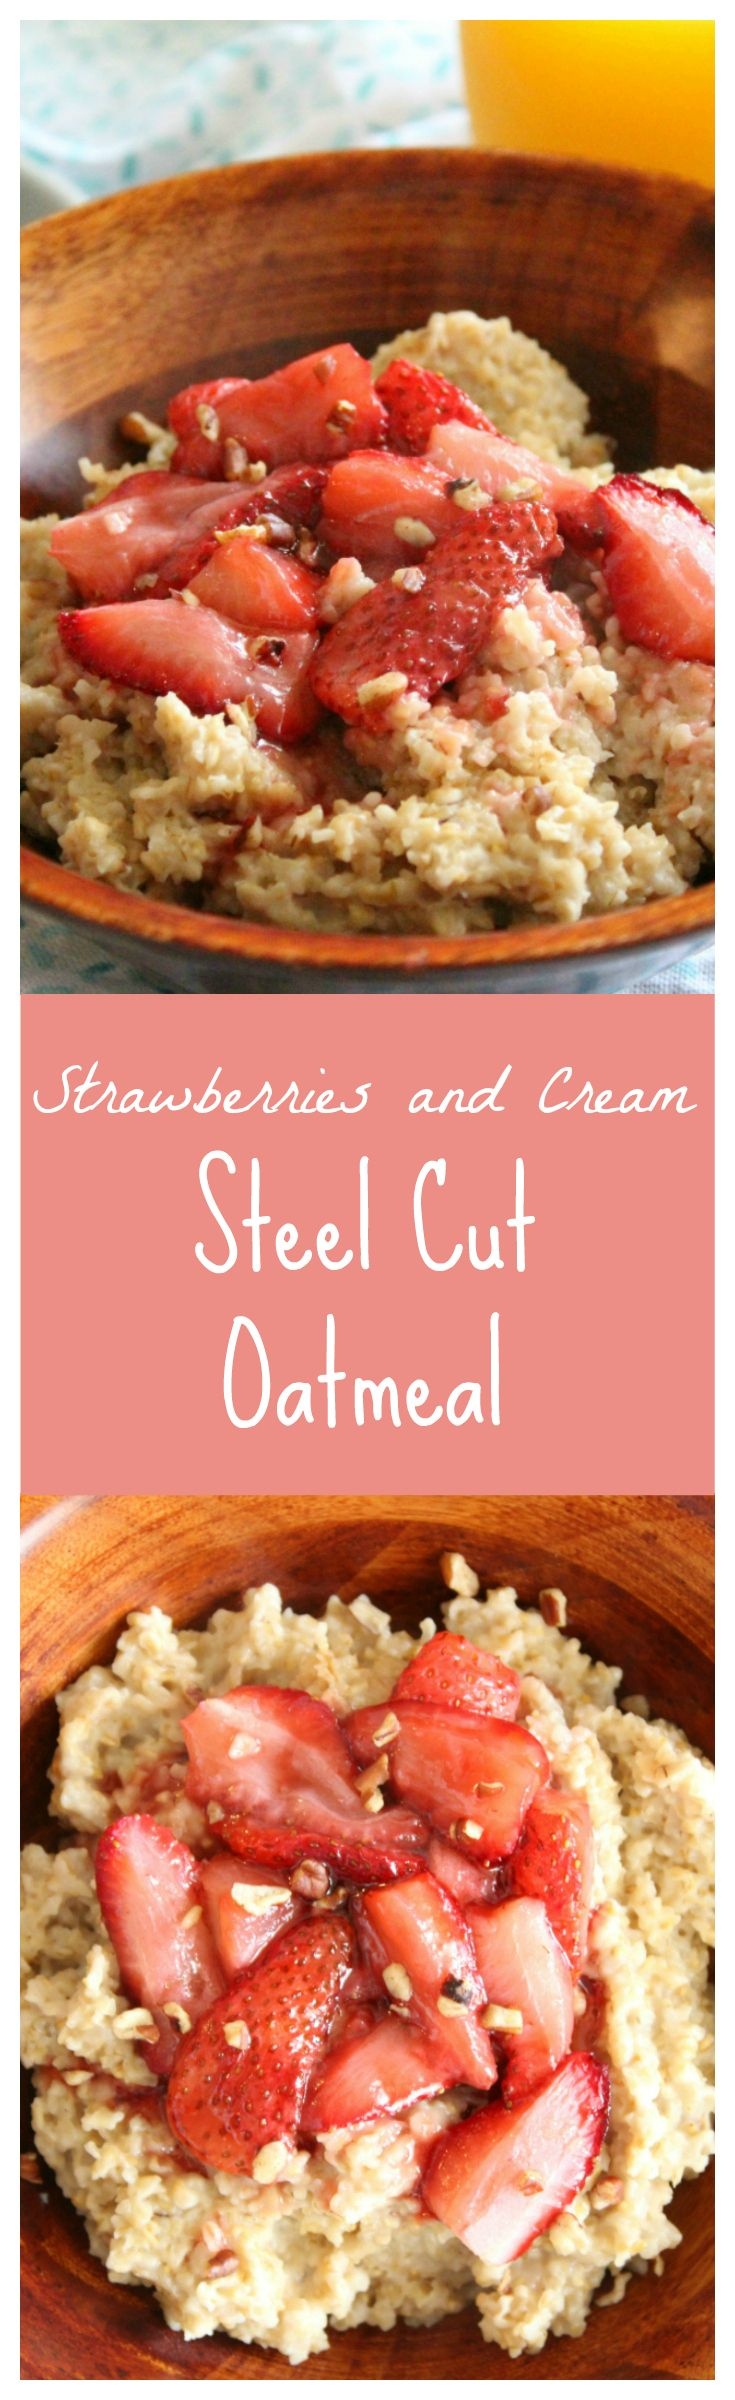 Strawberries and Cream Steel Cut Oatmeal – Delicious steel cut oatmeal topped with roasted strawberries! A healthy way to start the day!